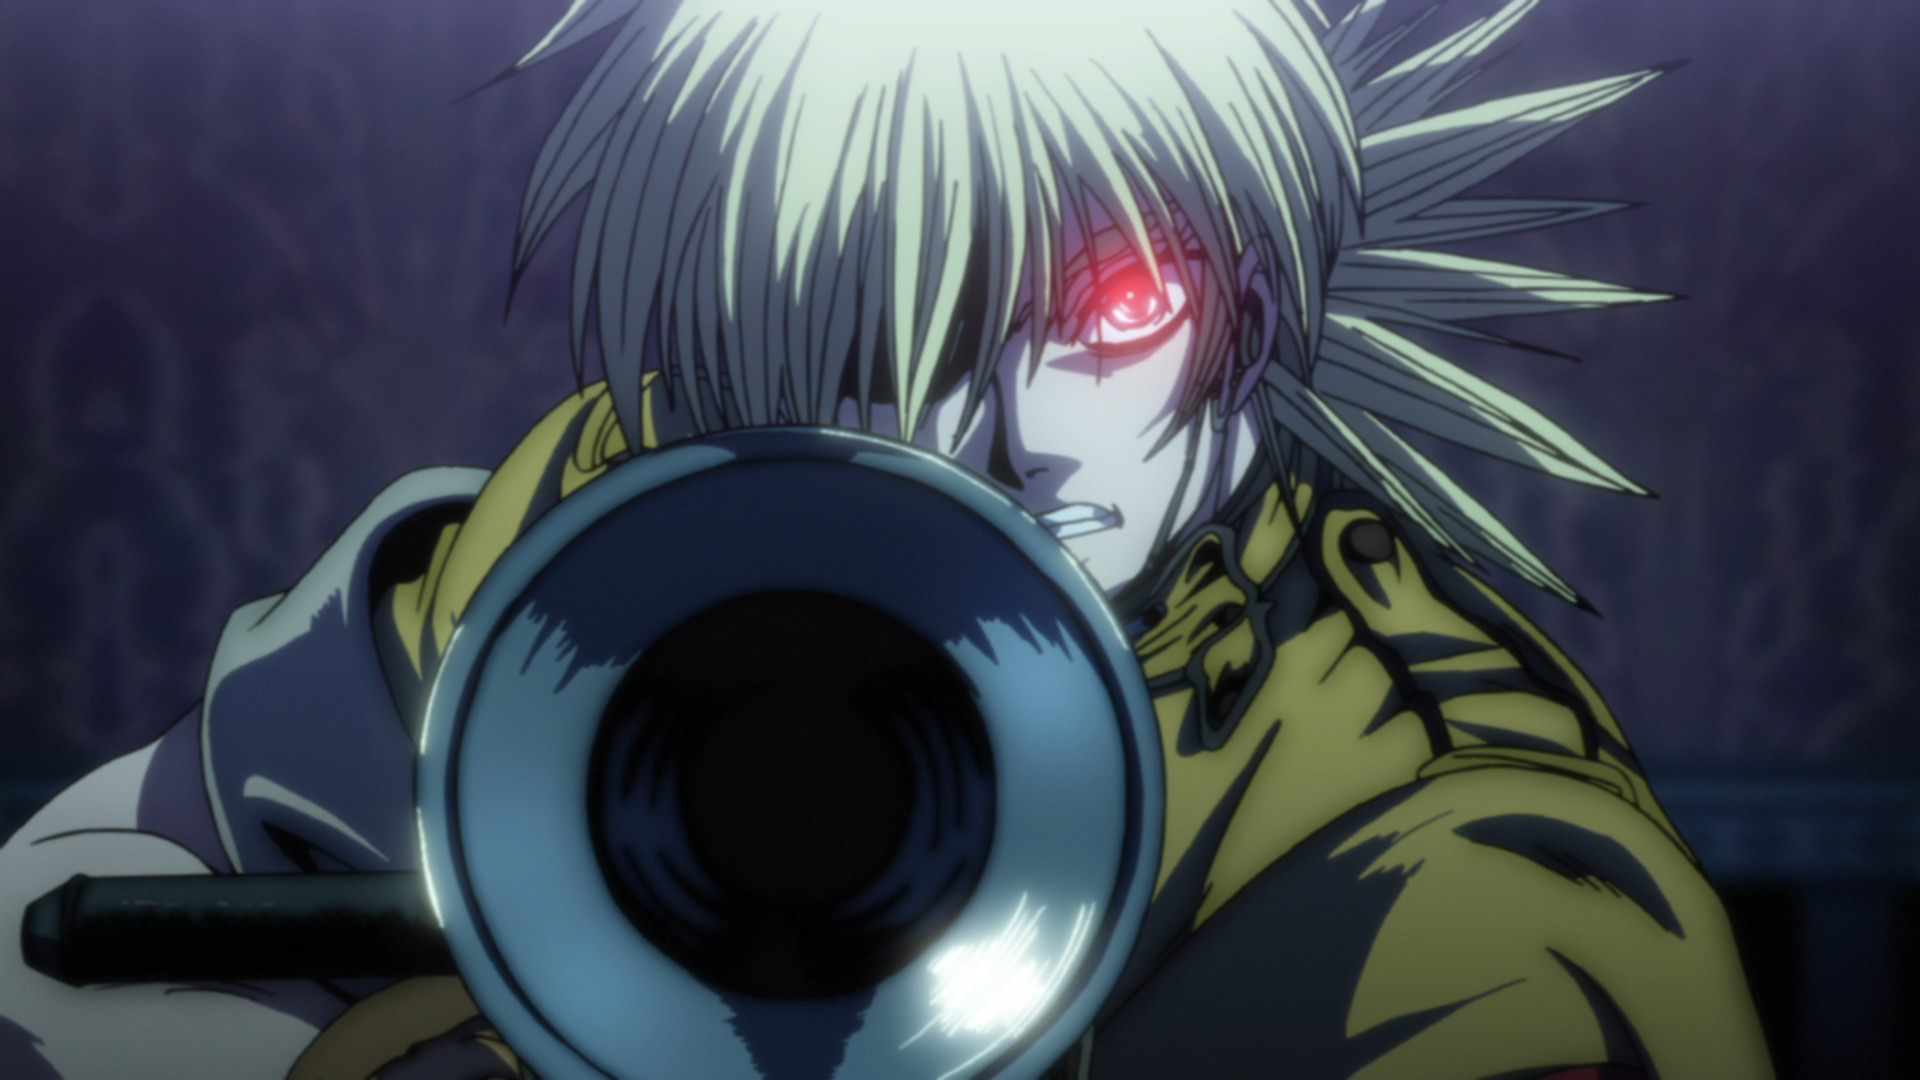 Hellsing Ultimate Seras Victoria Wallpaper 1920x1080